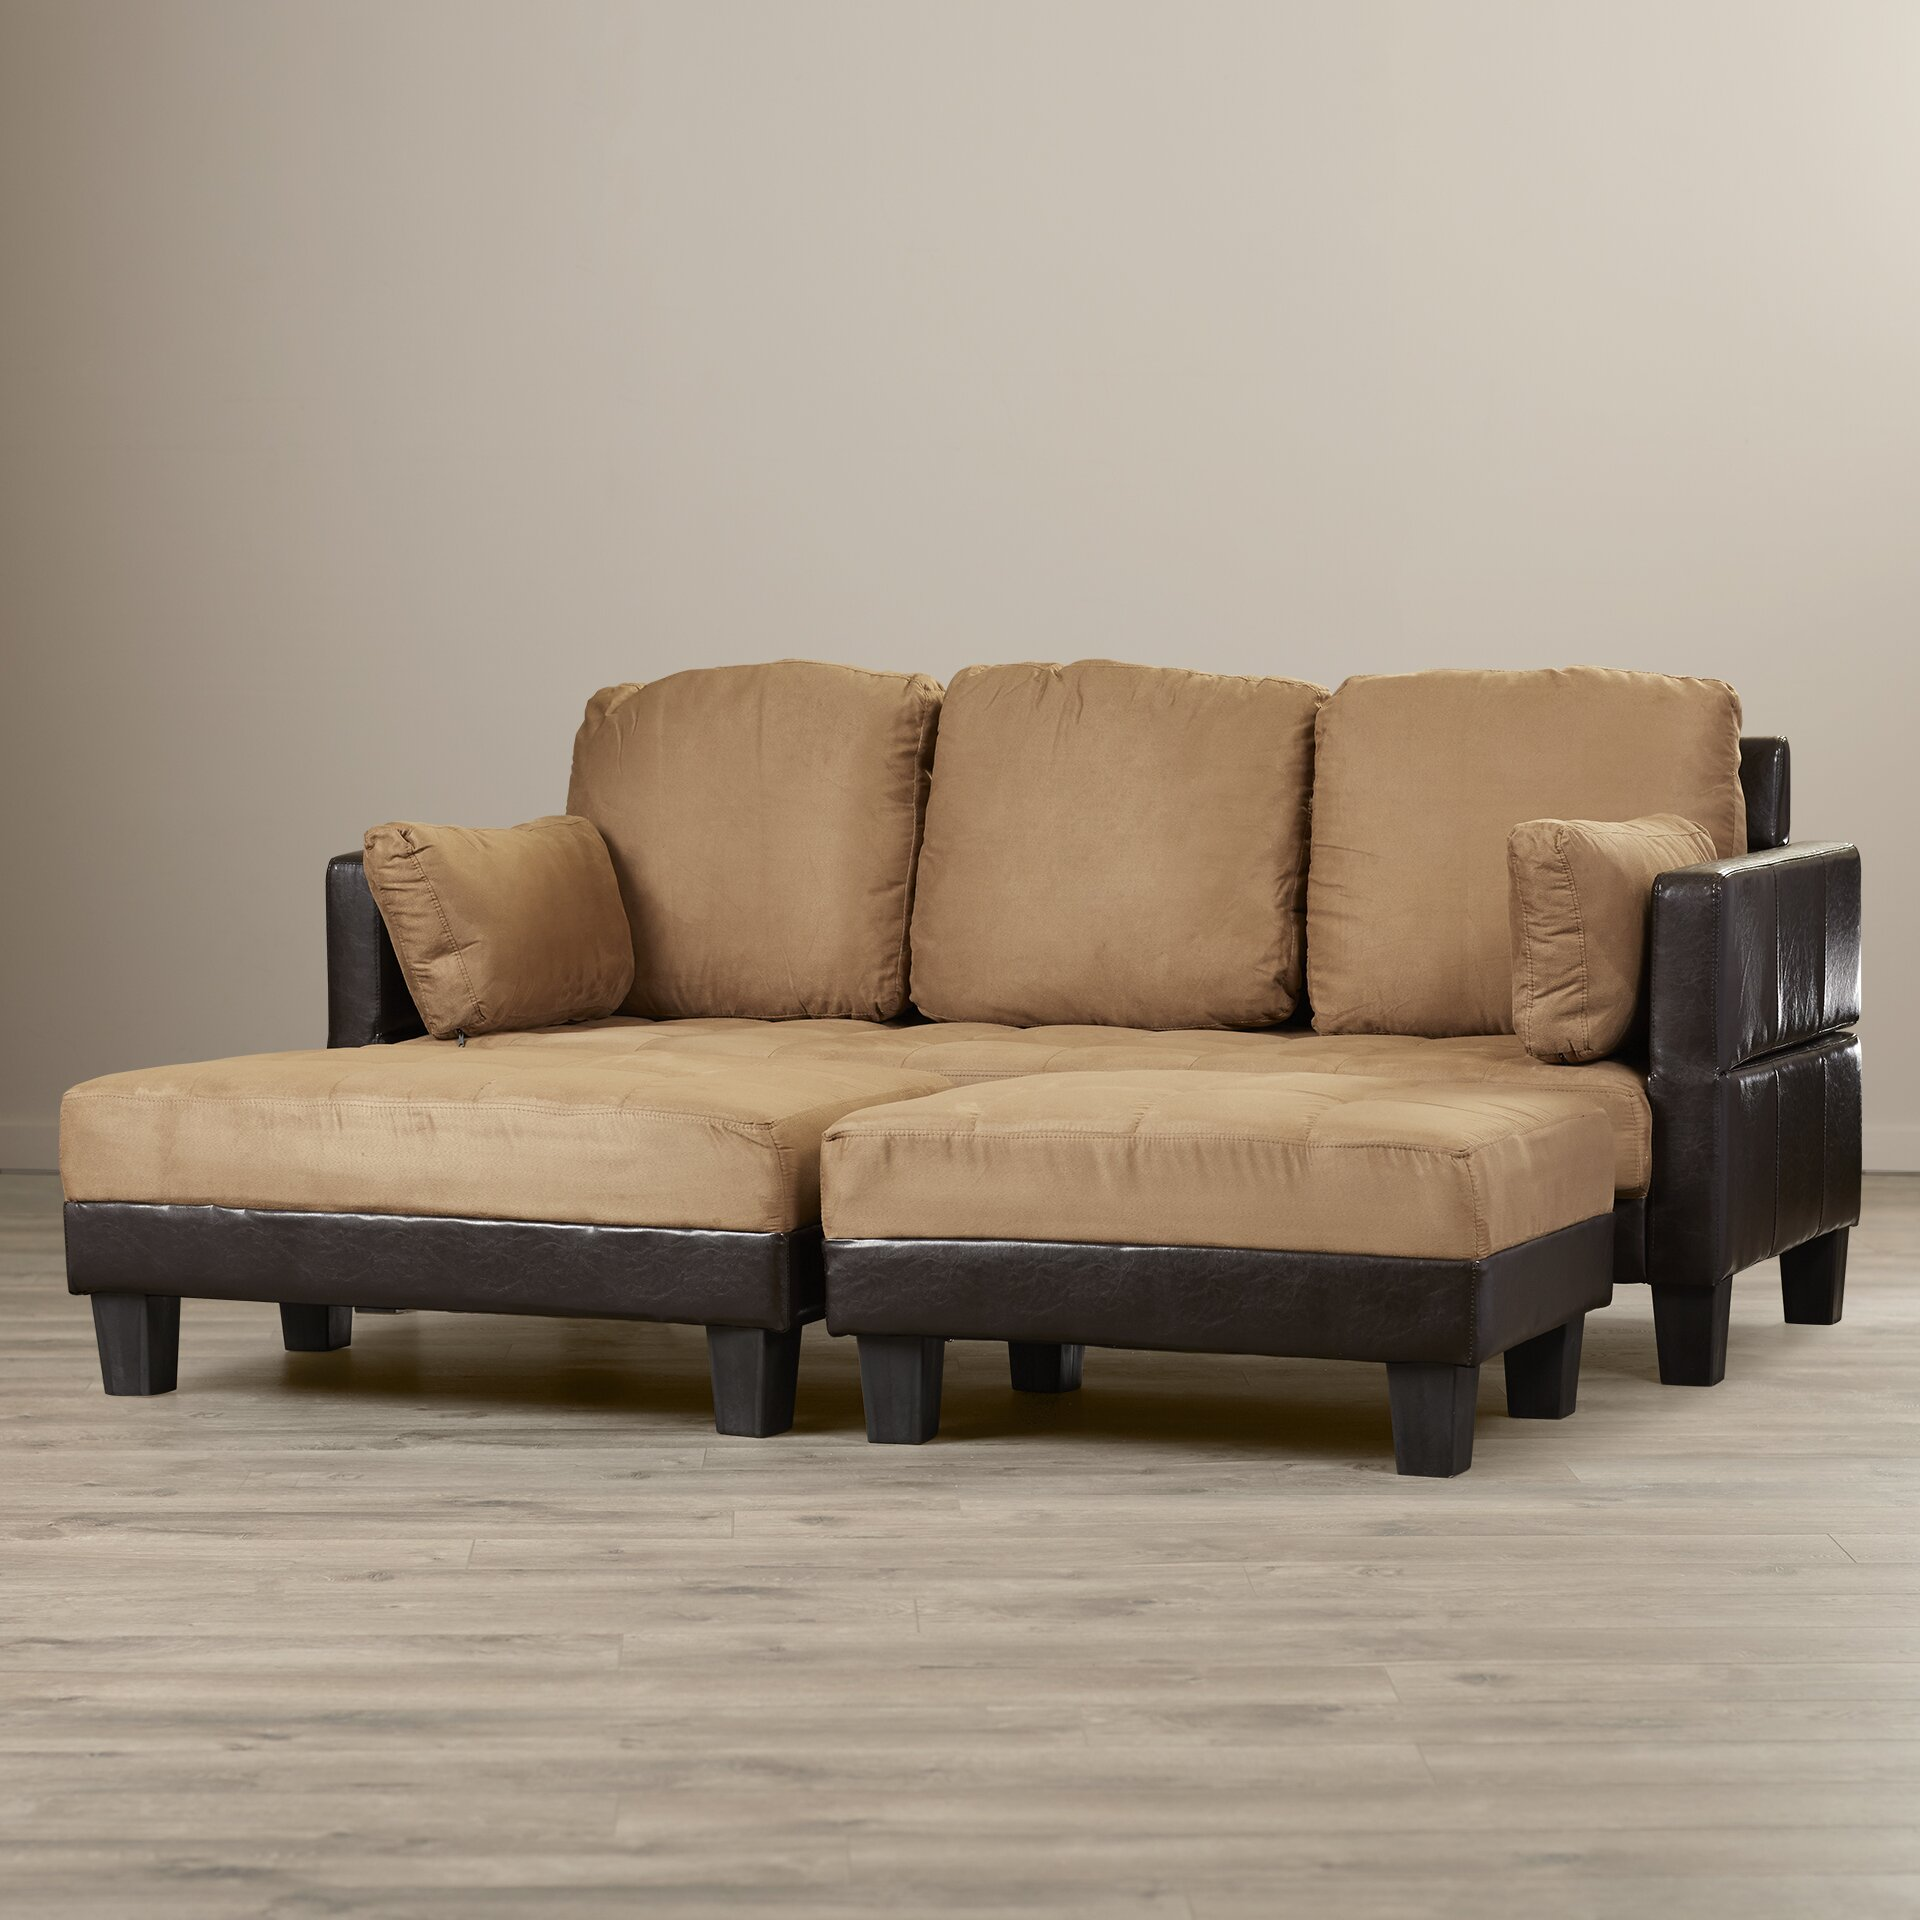 Modular Furniture Sofa: Andover Mills Woodbridge Modular Sectional & Reviews